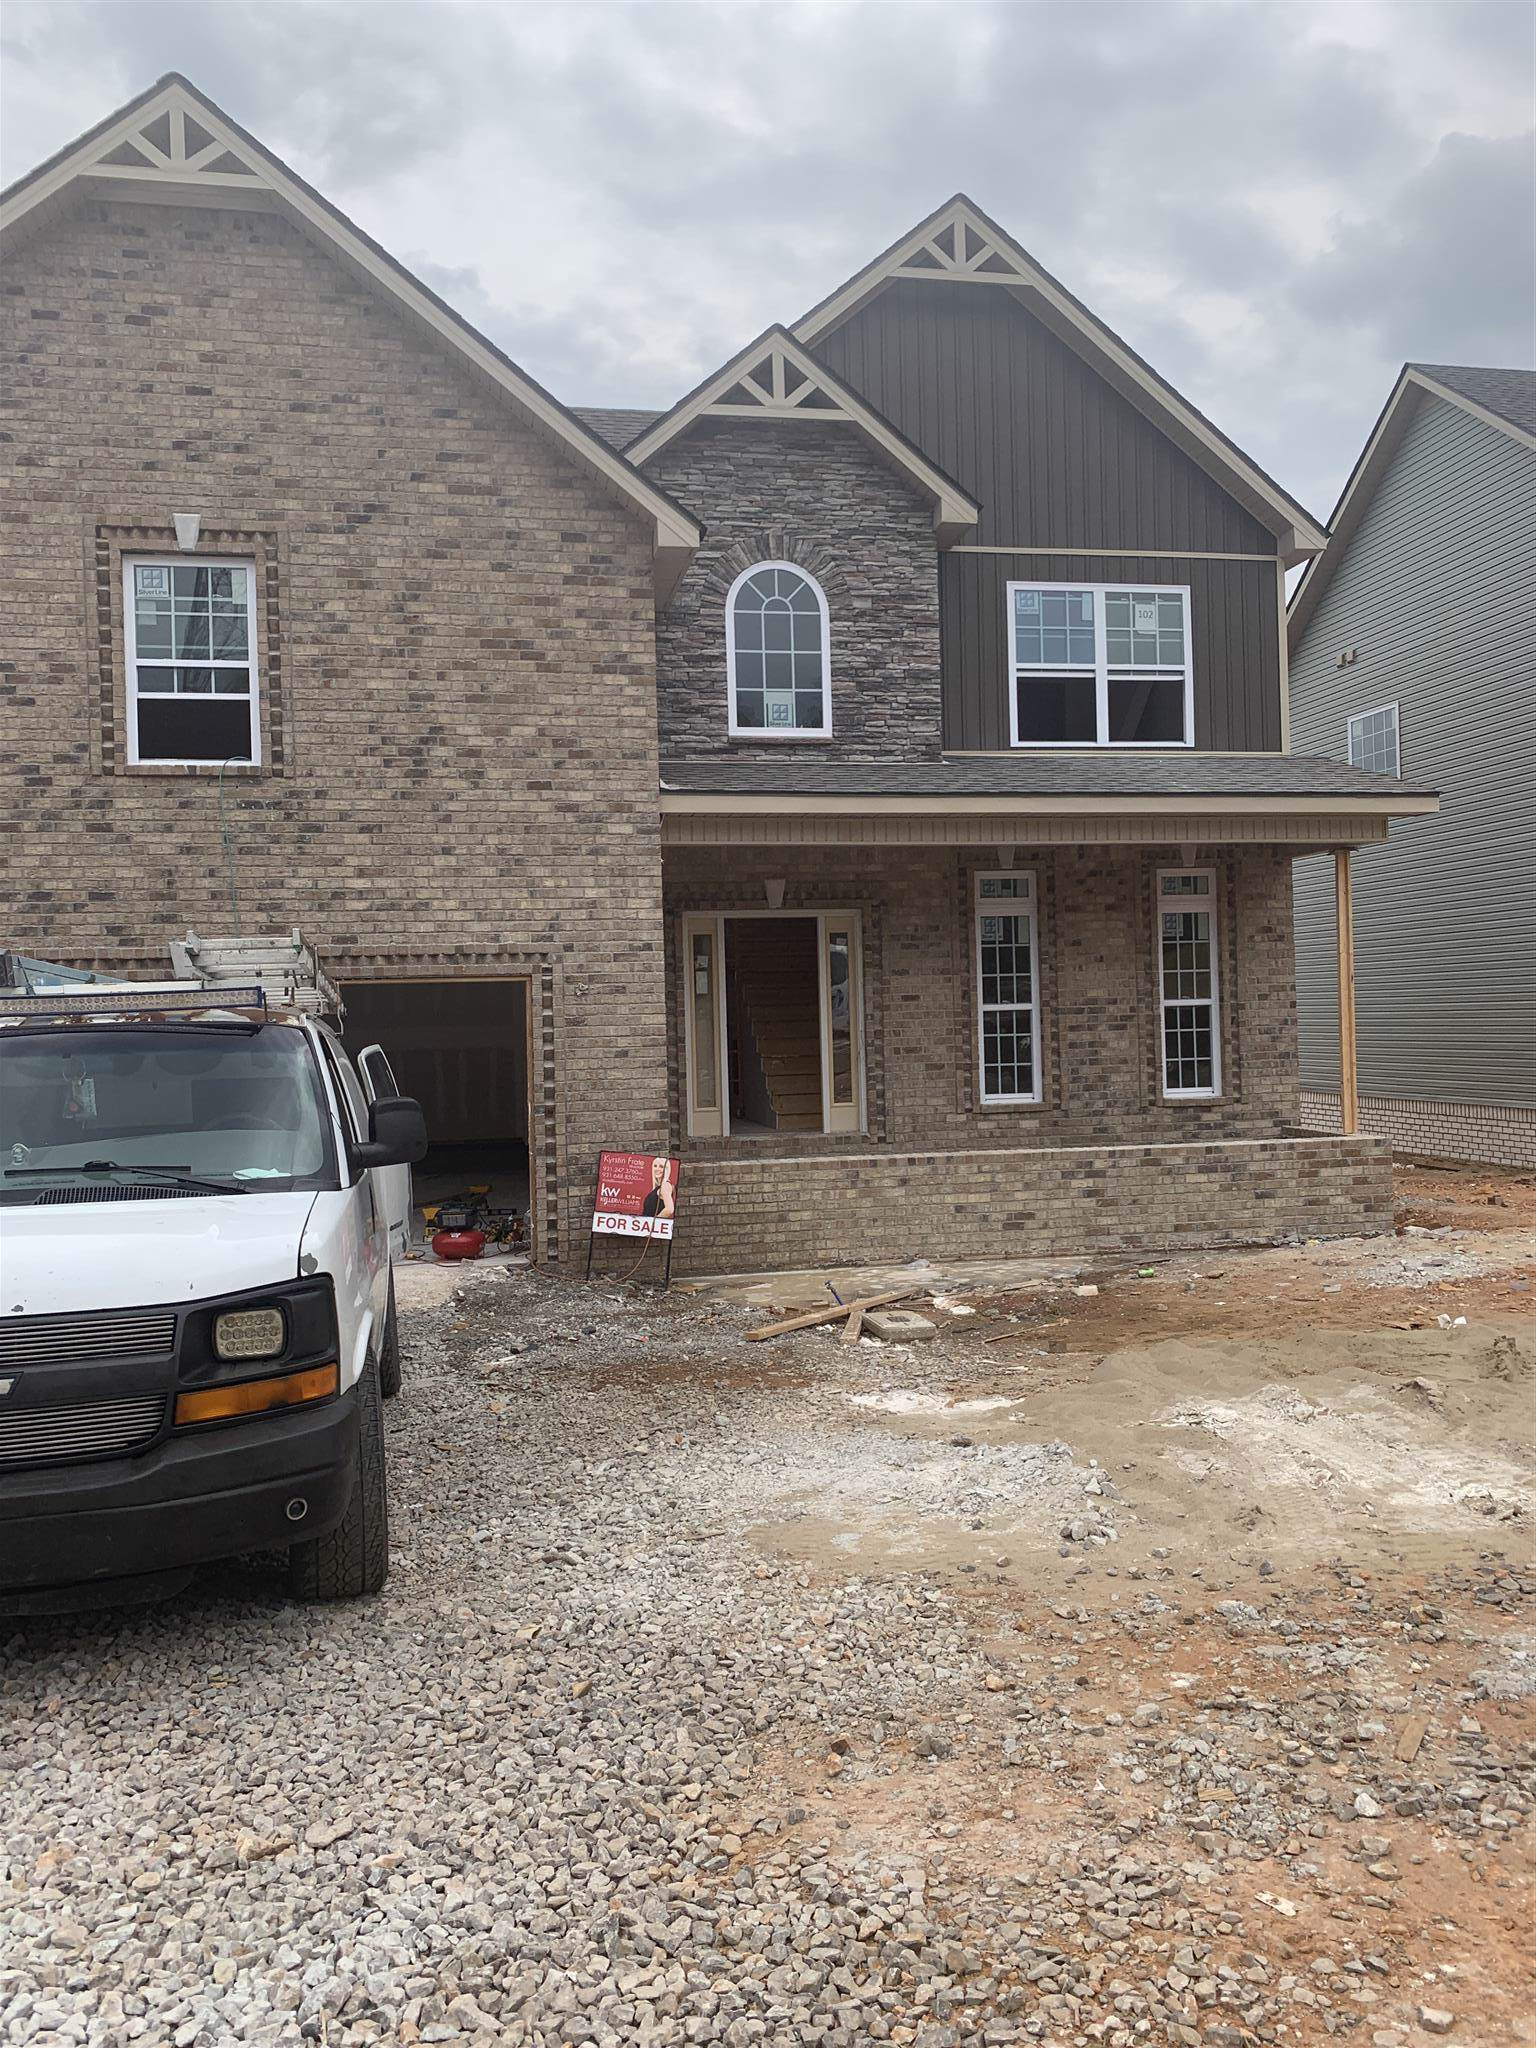 102 Locust Run, Clarksville, TN 37043 (MLS #RTC2053830) :: REMAX Elite